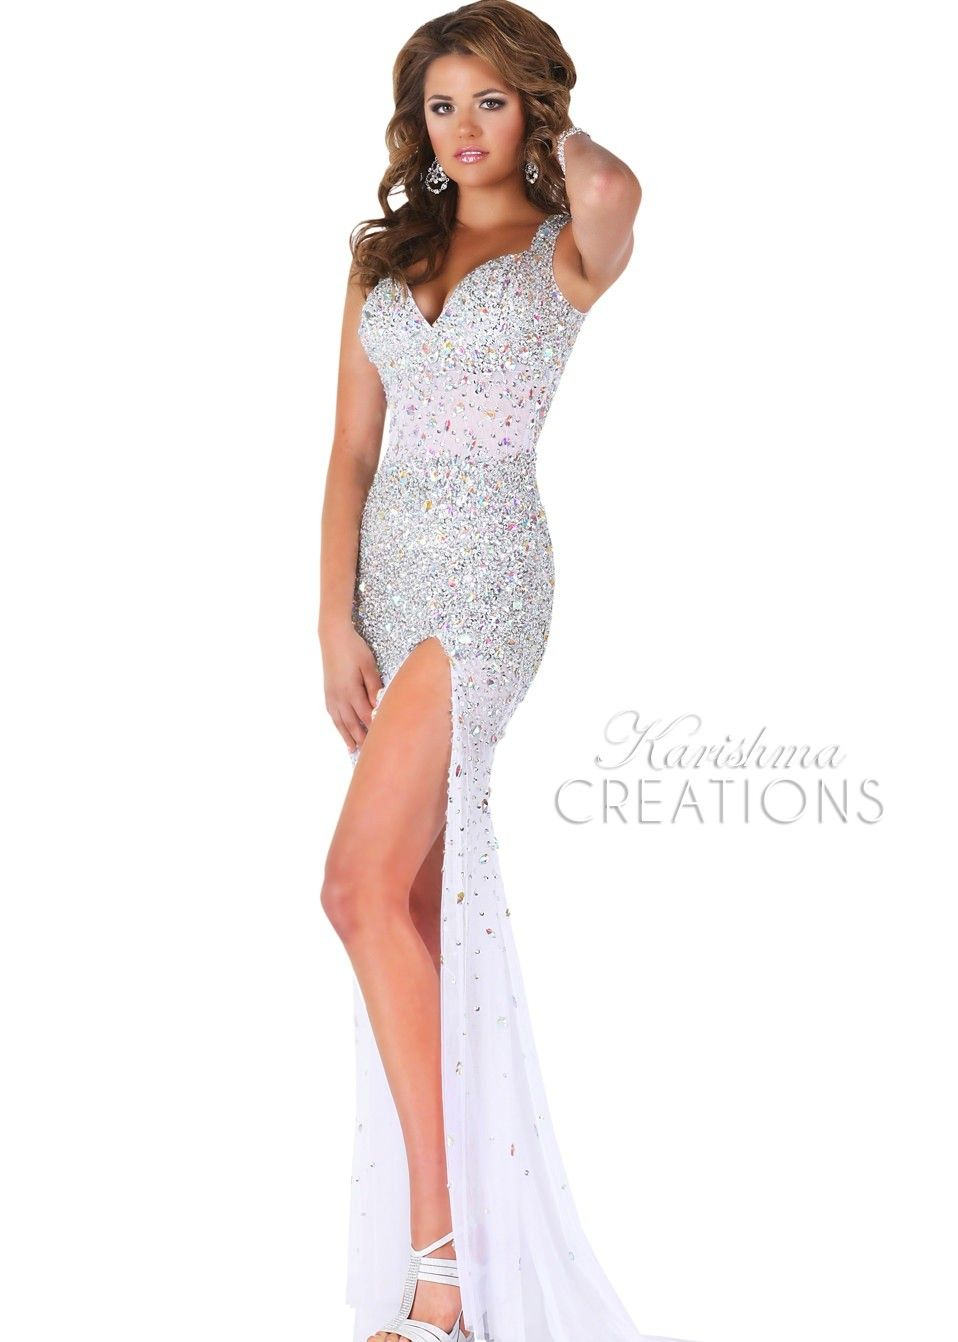 Envious Couture By Karishma Creations 3687 Sparkly Sequin Dress Prom Dresses Prom Dresses Modest Mermaid Prom Dresses [ 1342 x 958 Pixel ]